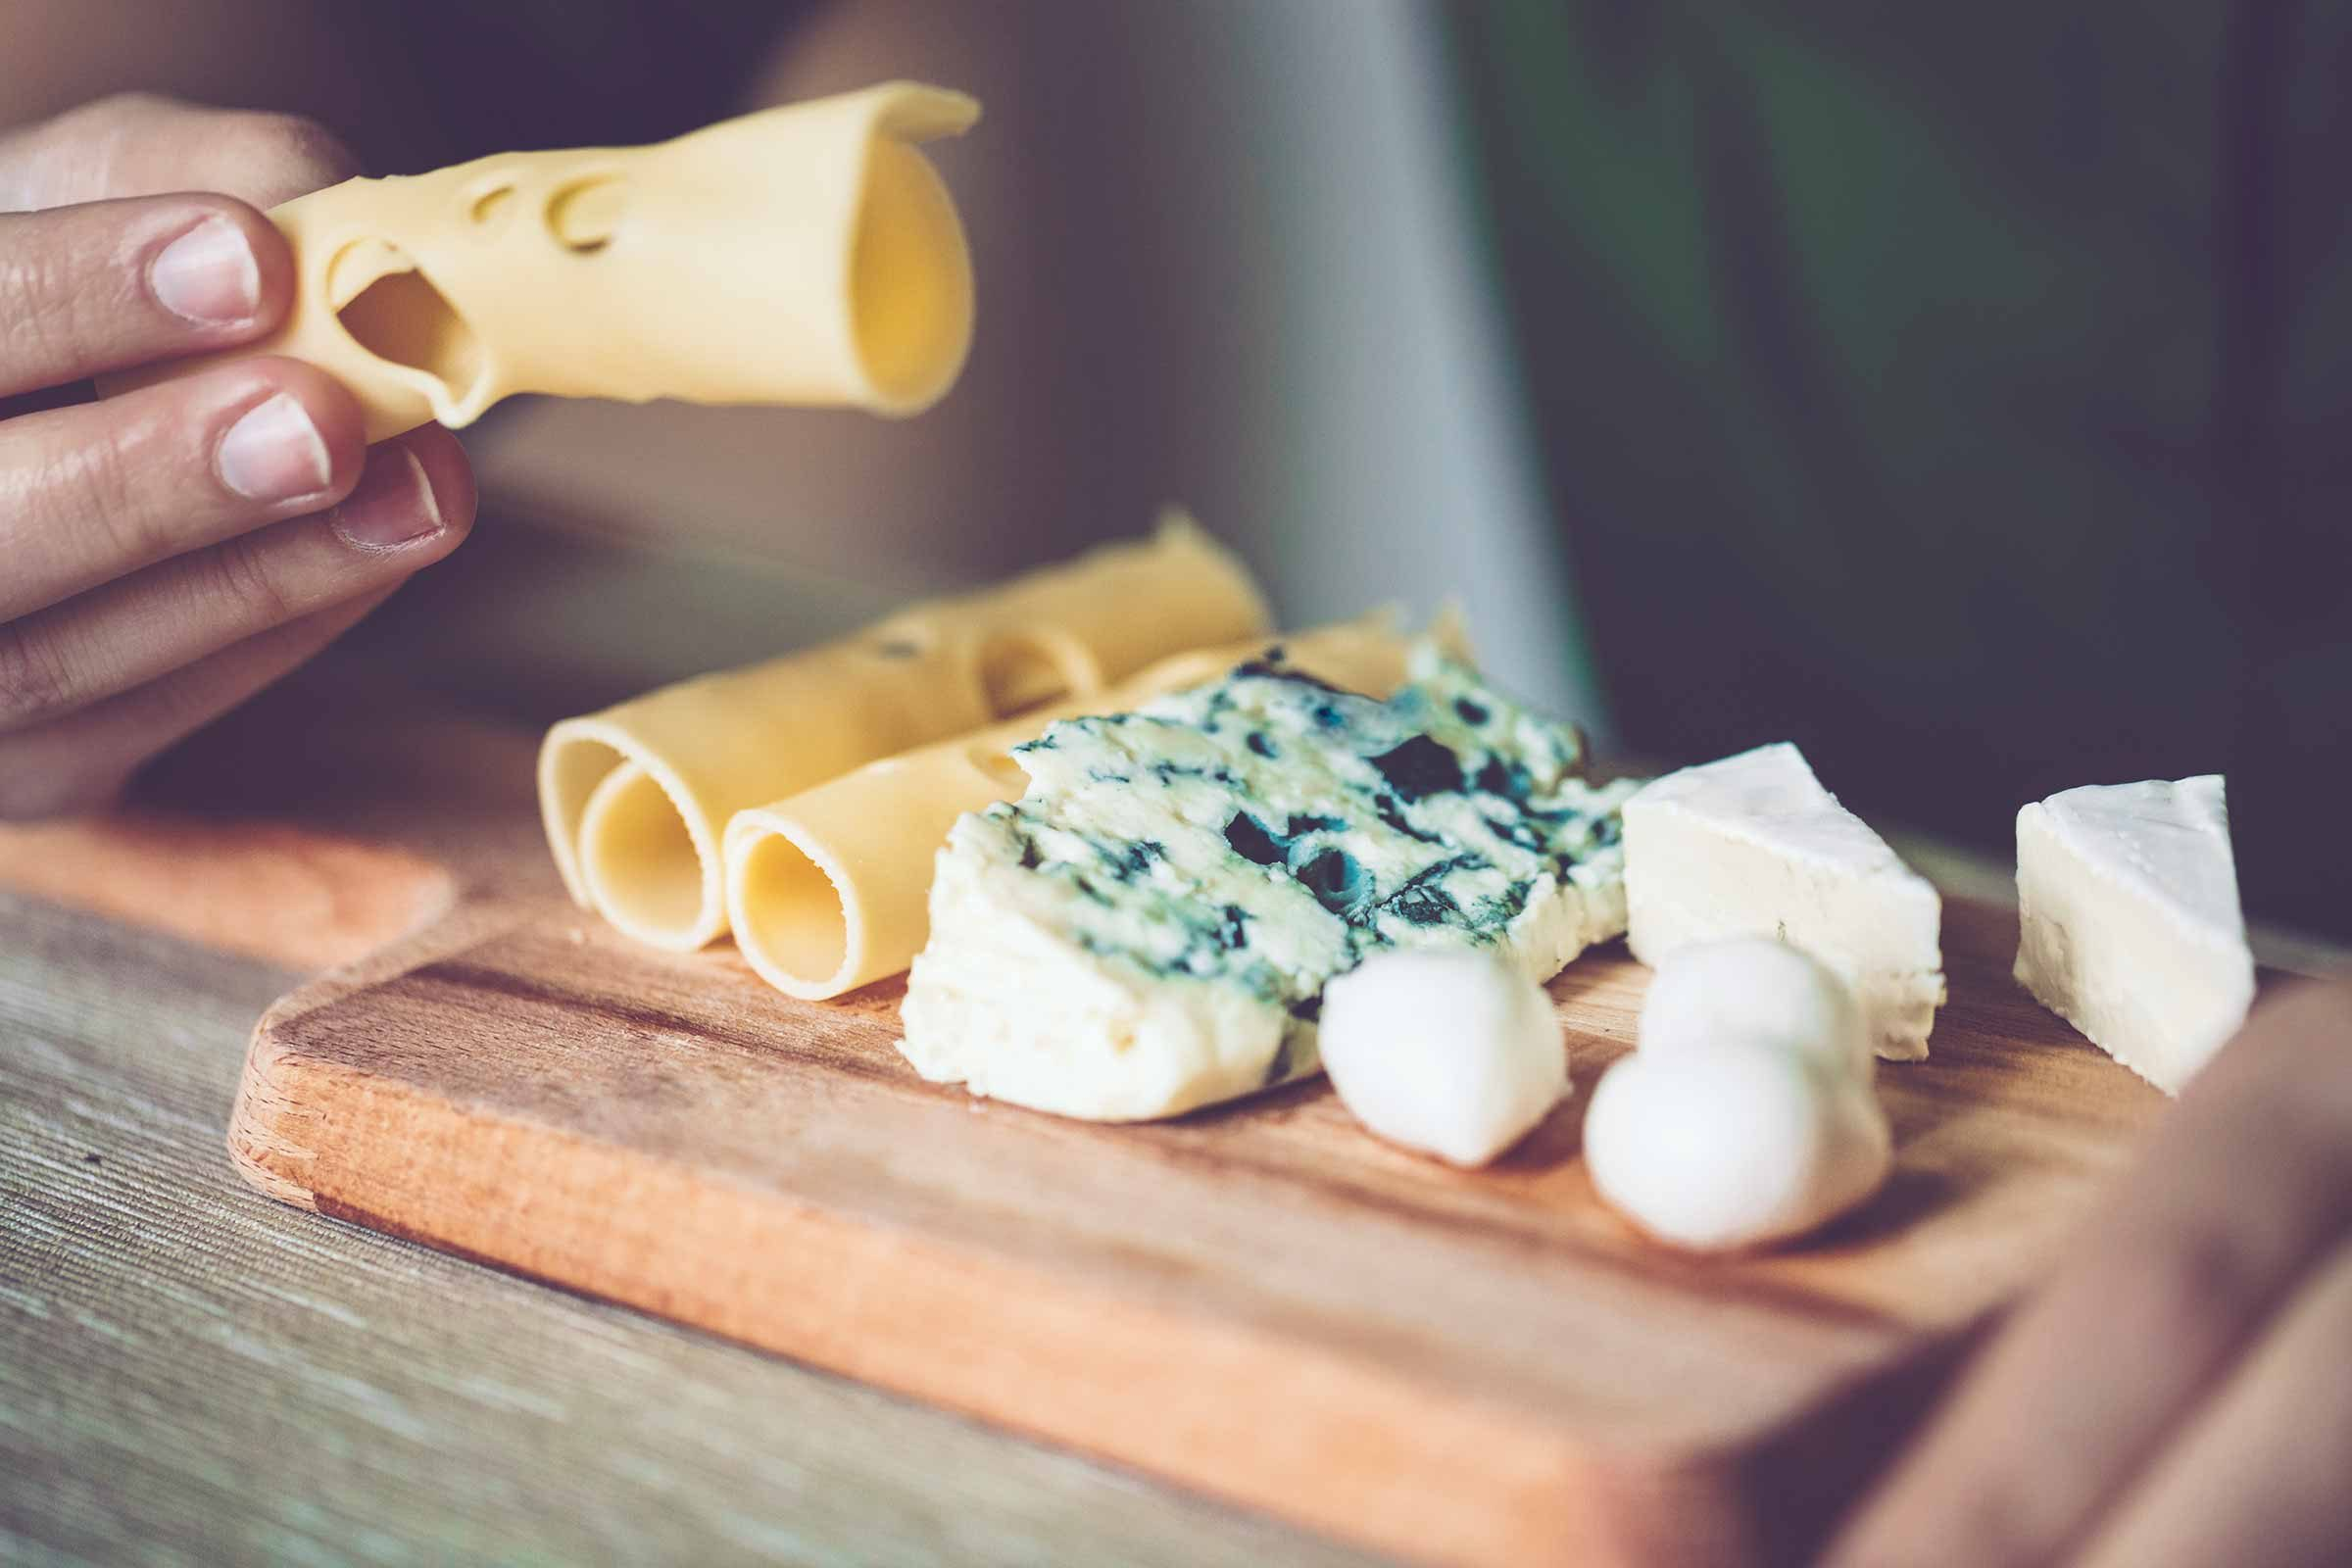 Swiss cheese, blue cheese, brie cheese, and mozzarella balls arranged on a wooden platter, with a man sampling the Swiss cheese.